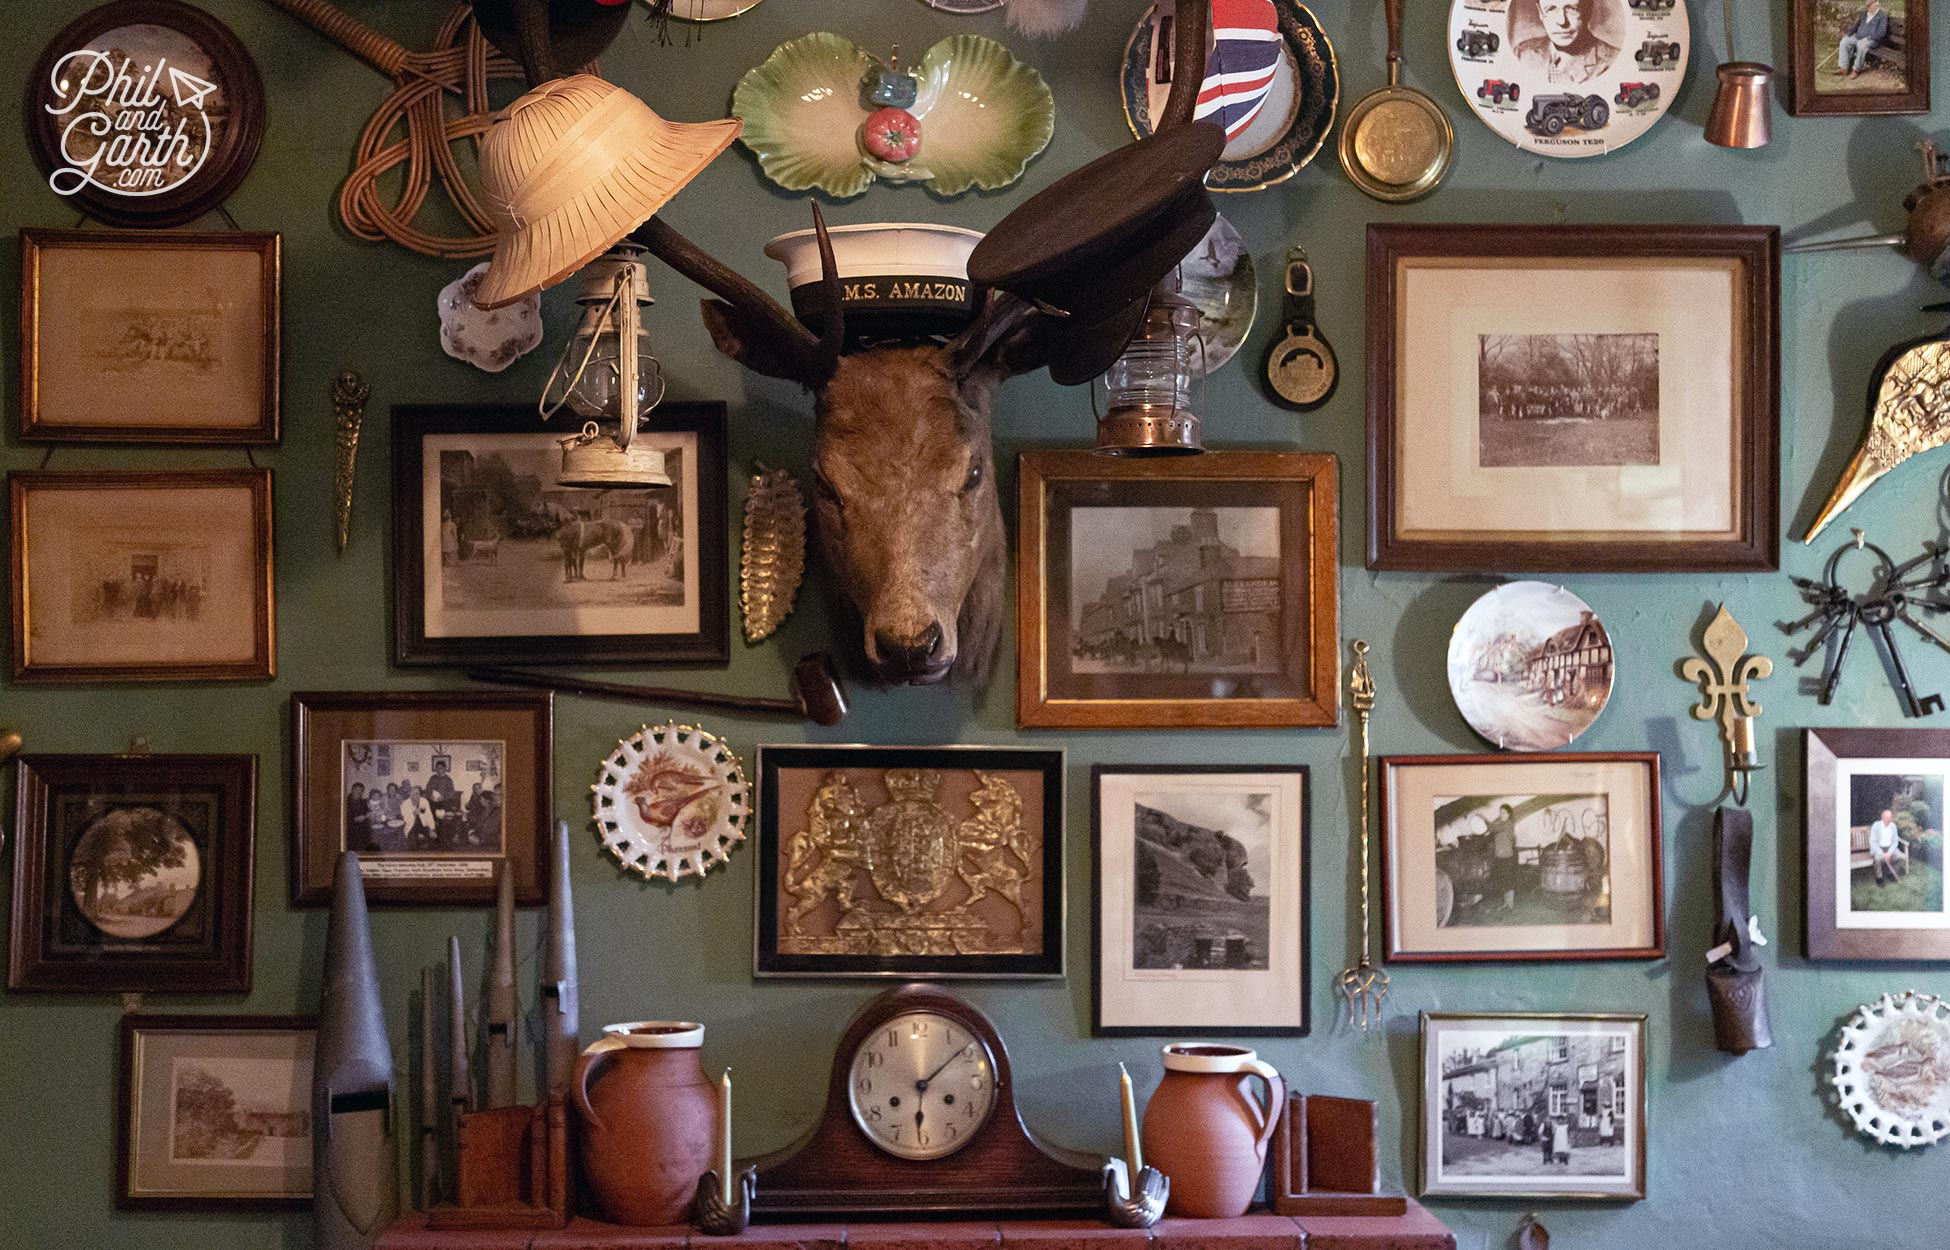 Inside the Falcon pub in Arncliffe with its quirky interior decoration